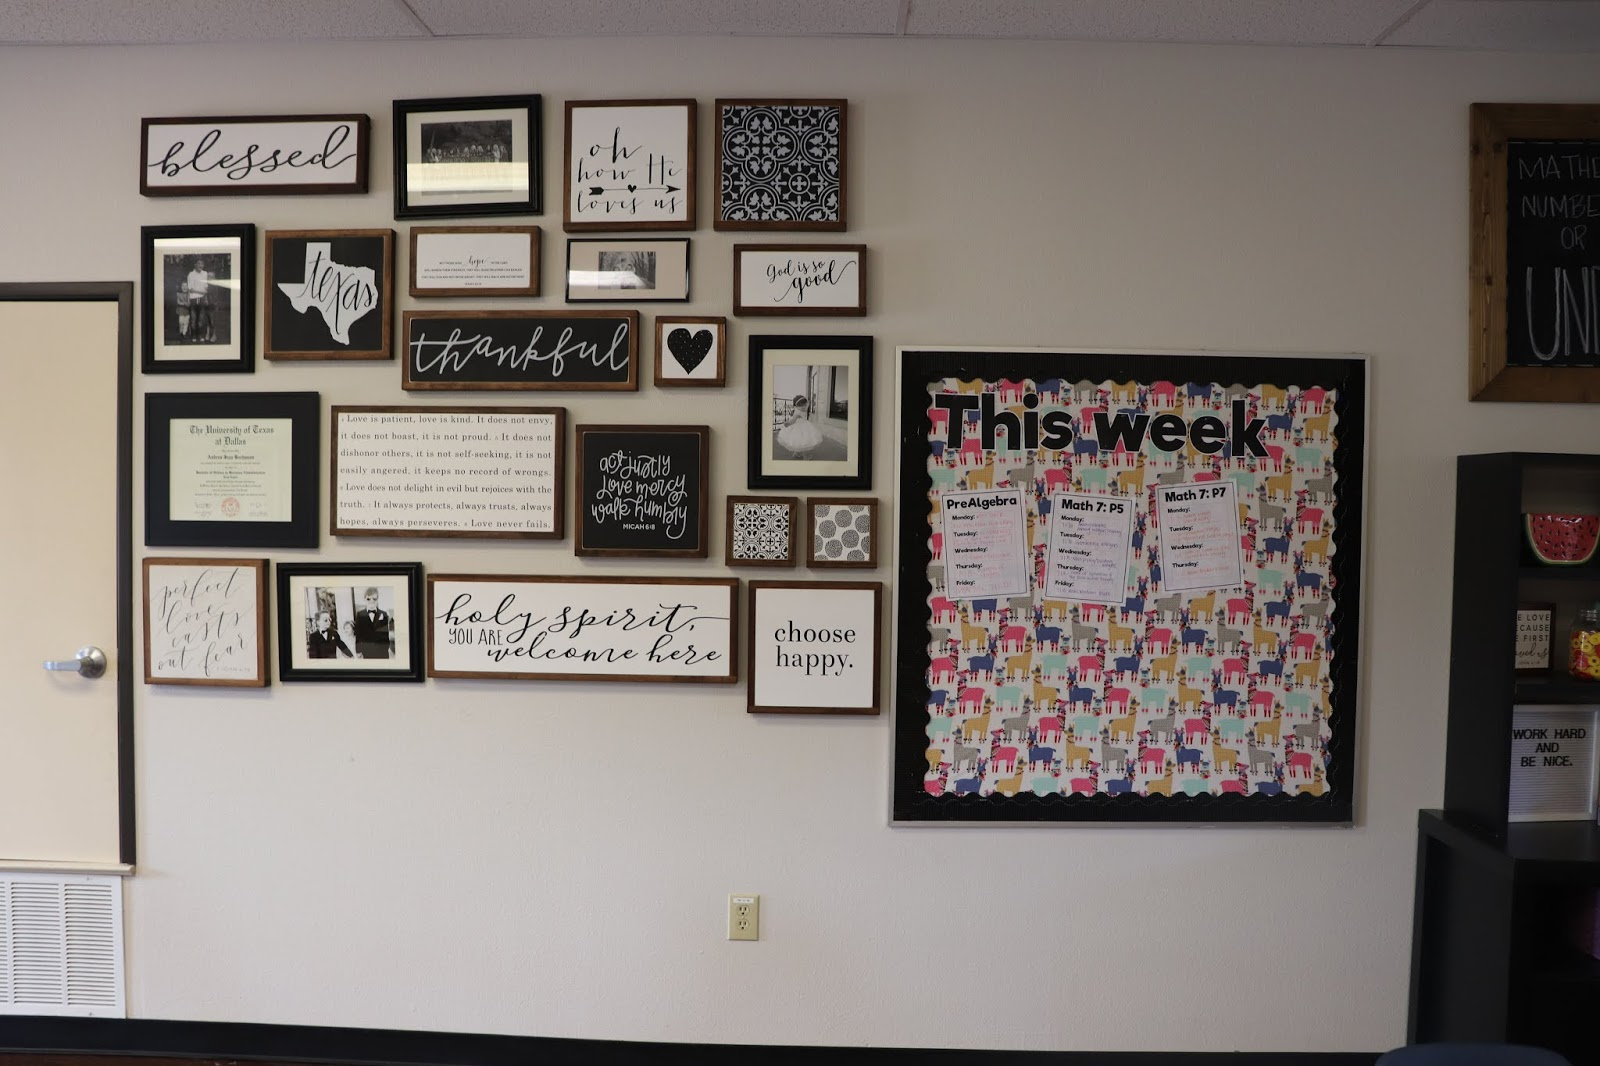 Teacher Tuesday Back To School Momfessionals Bloglovin Circuit Boards More Canvas Art Board Pillow The Left Of Door Is This Little Corner Table With Pencil Sharpener Used Be In Our Playroom And Kids Use Pillows If When They Choose